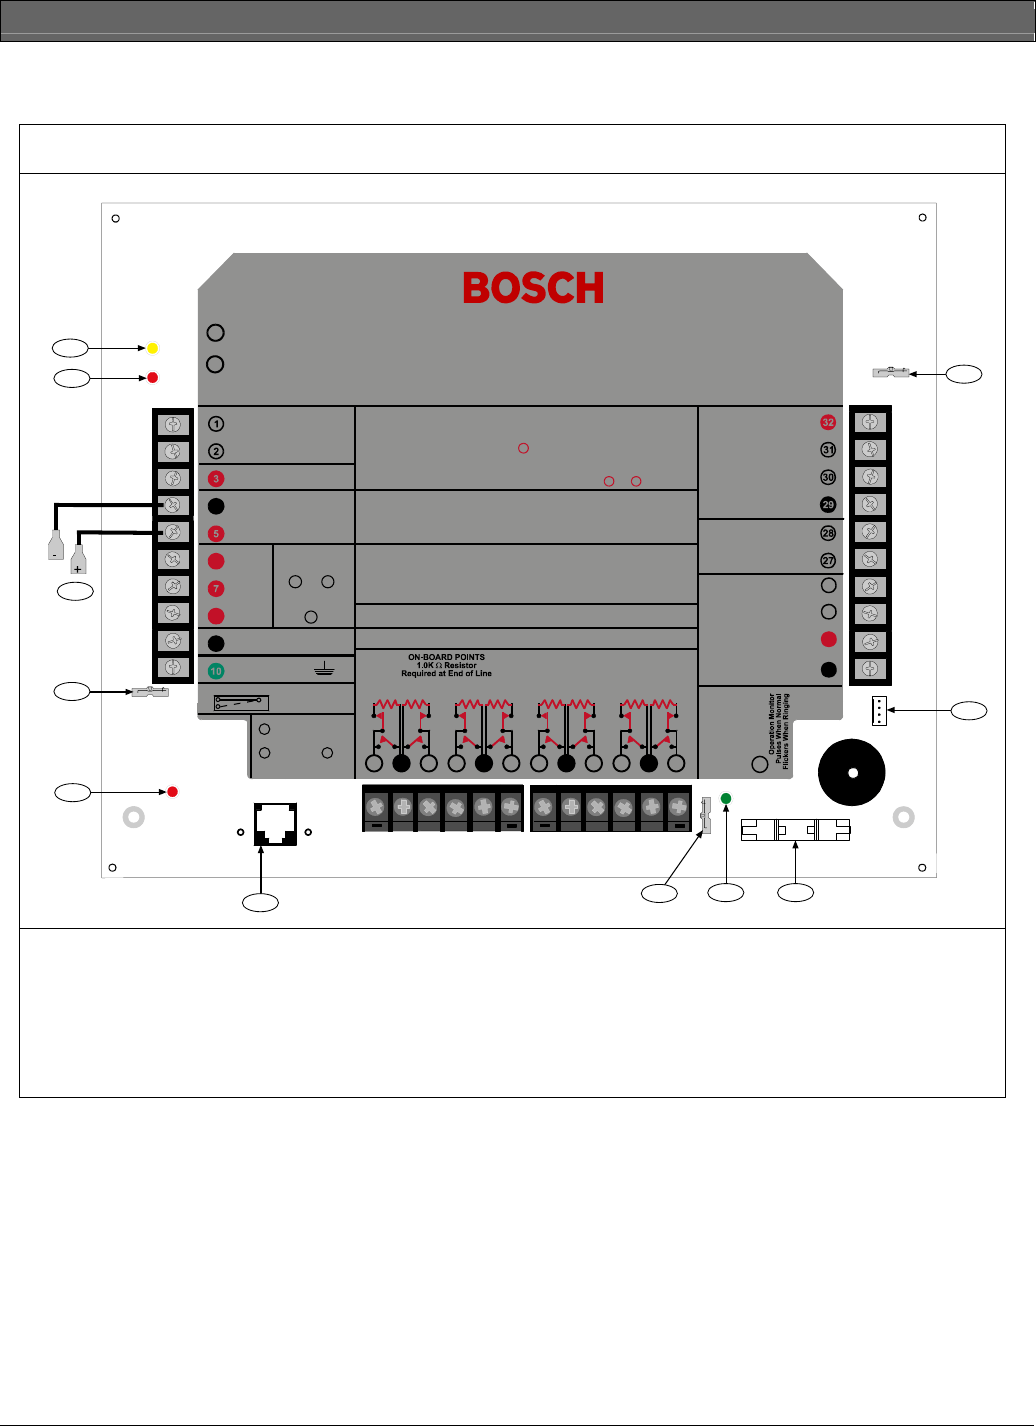 Bosch Security Alarm 862 Manual